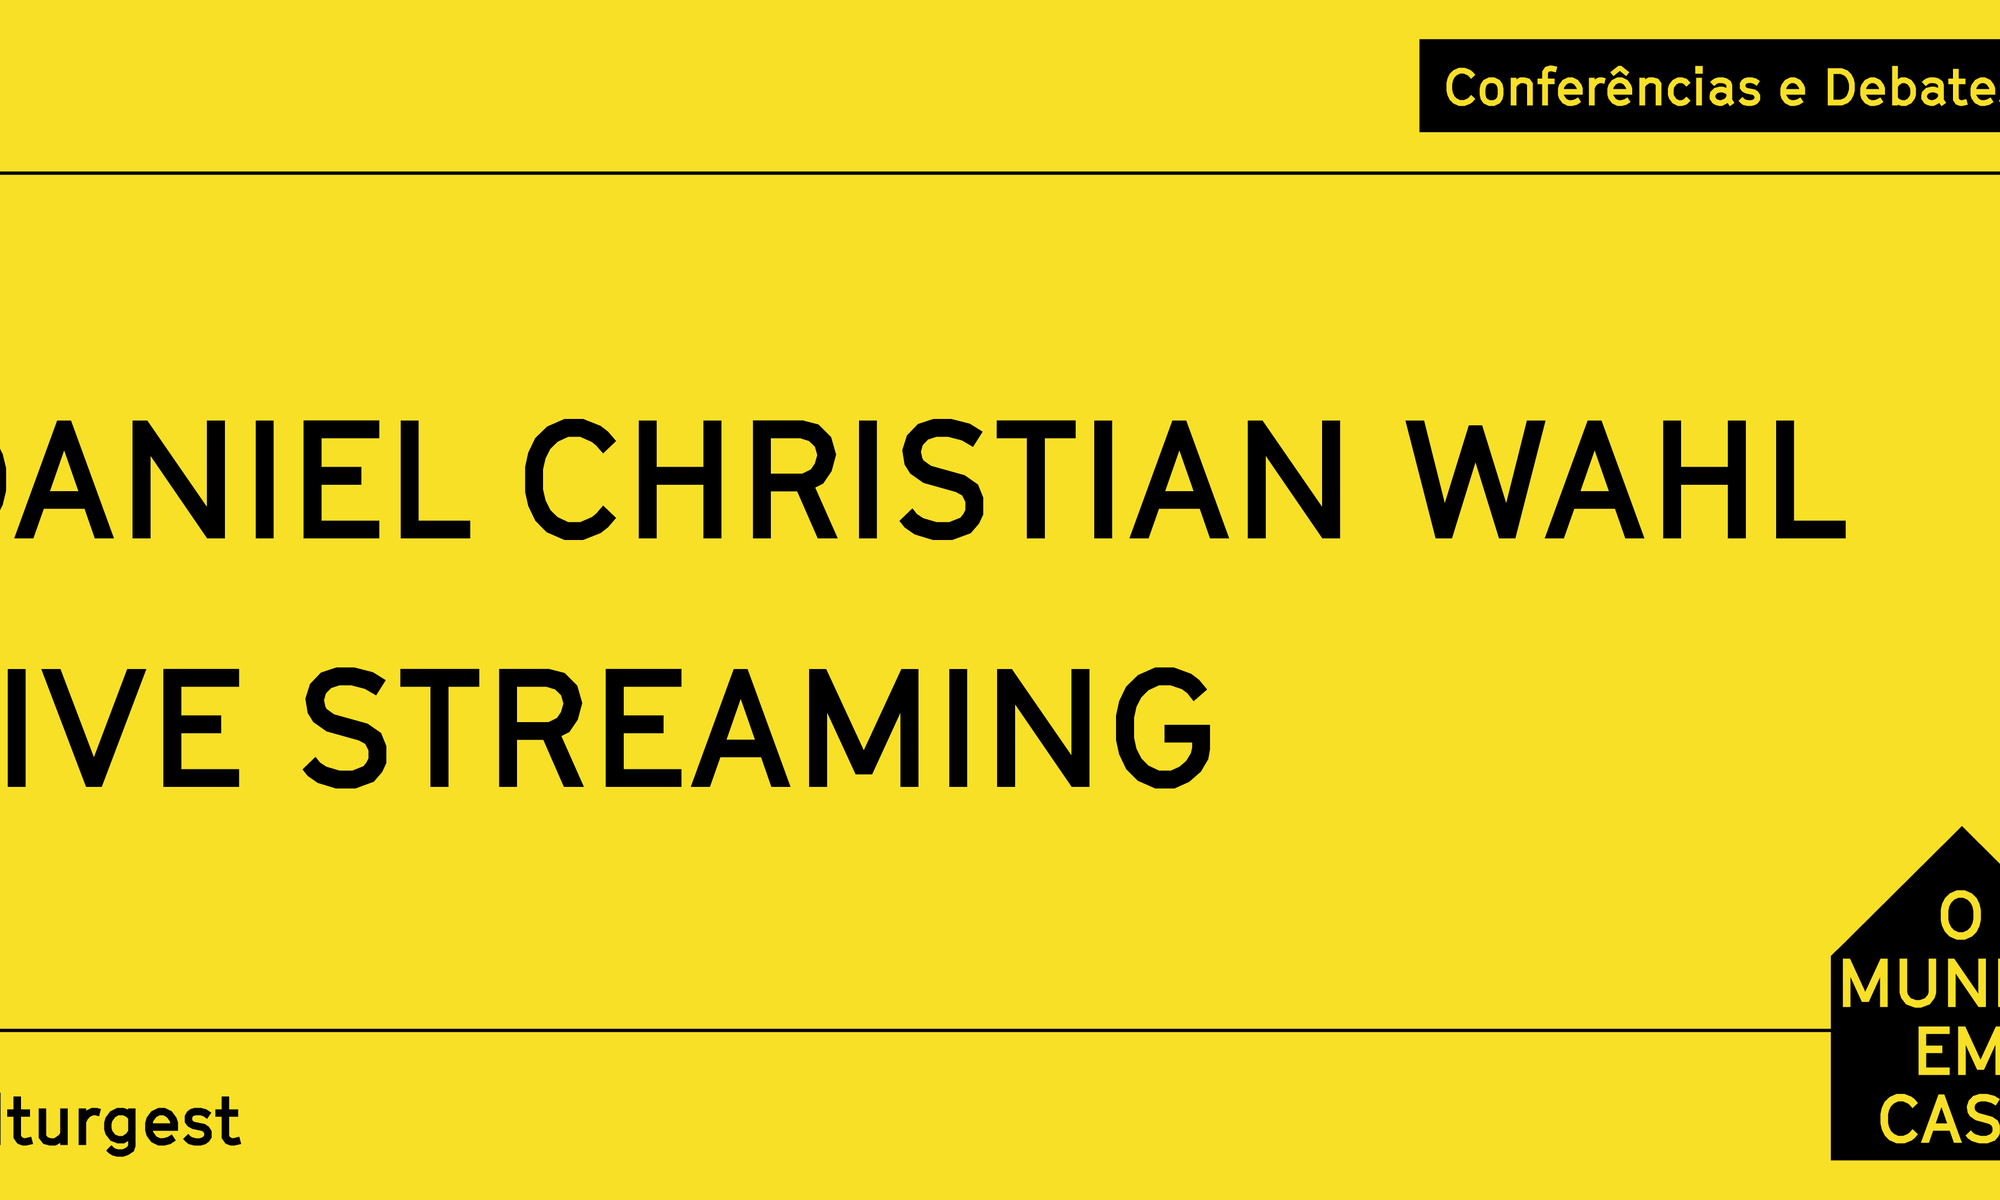 Daniel Christian Wahl - live streaming